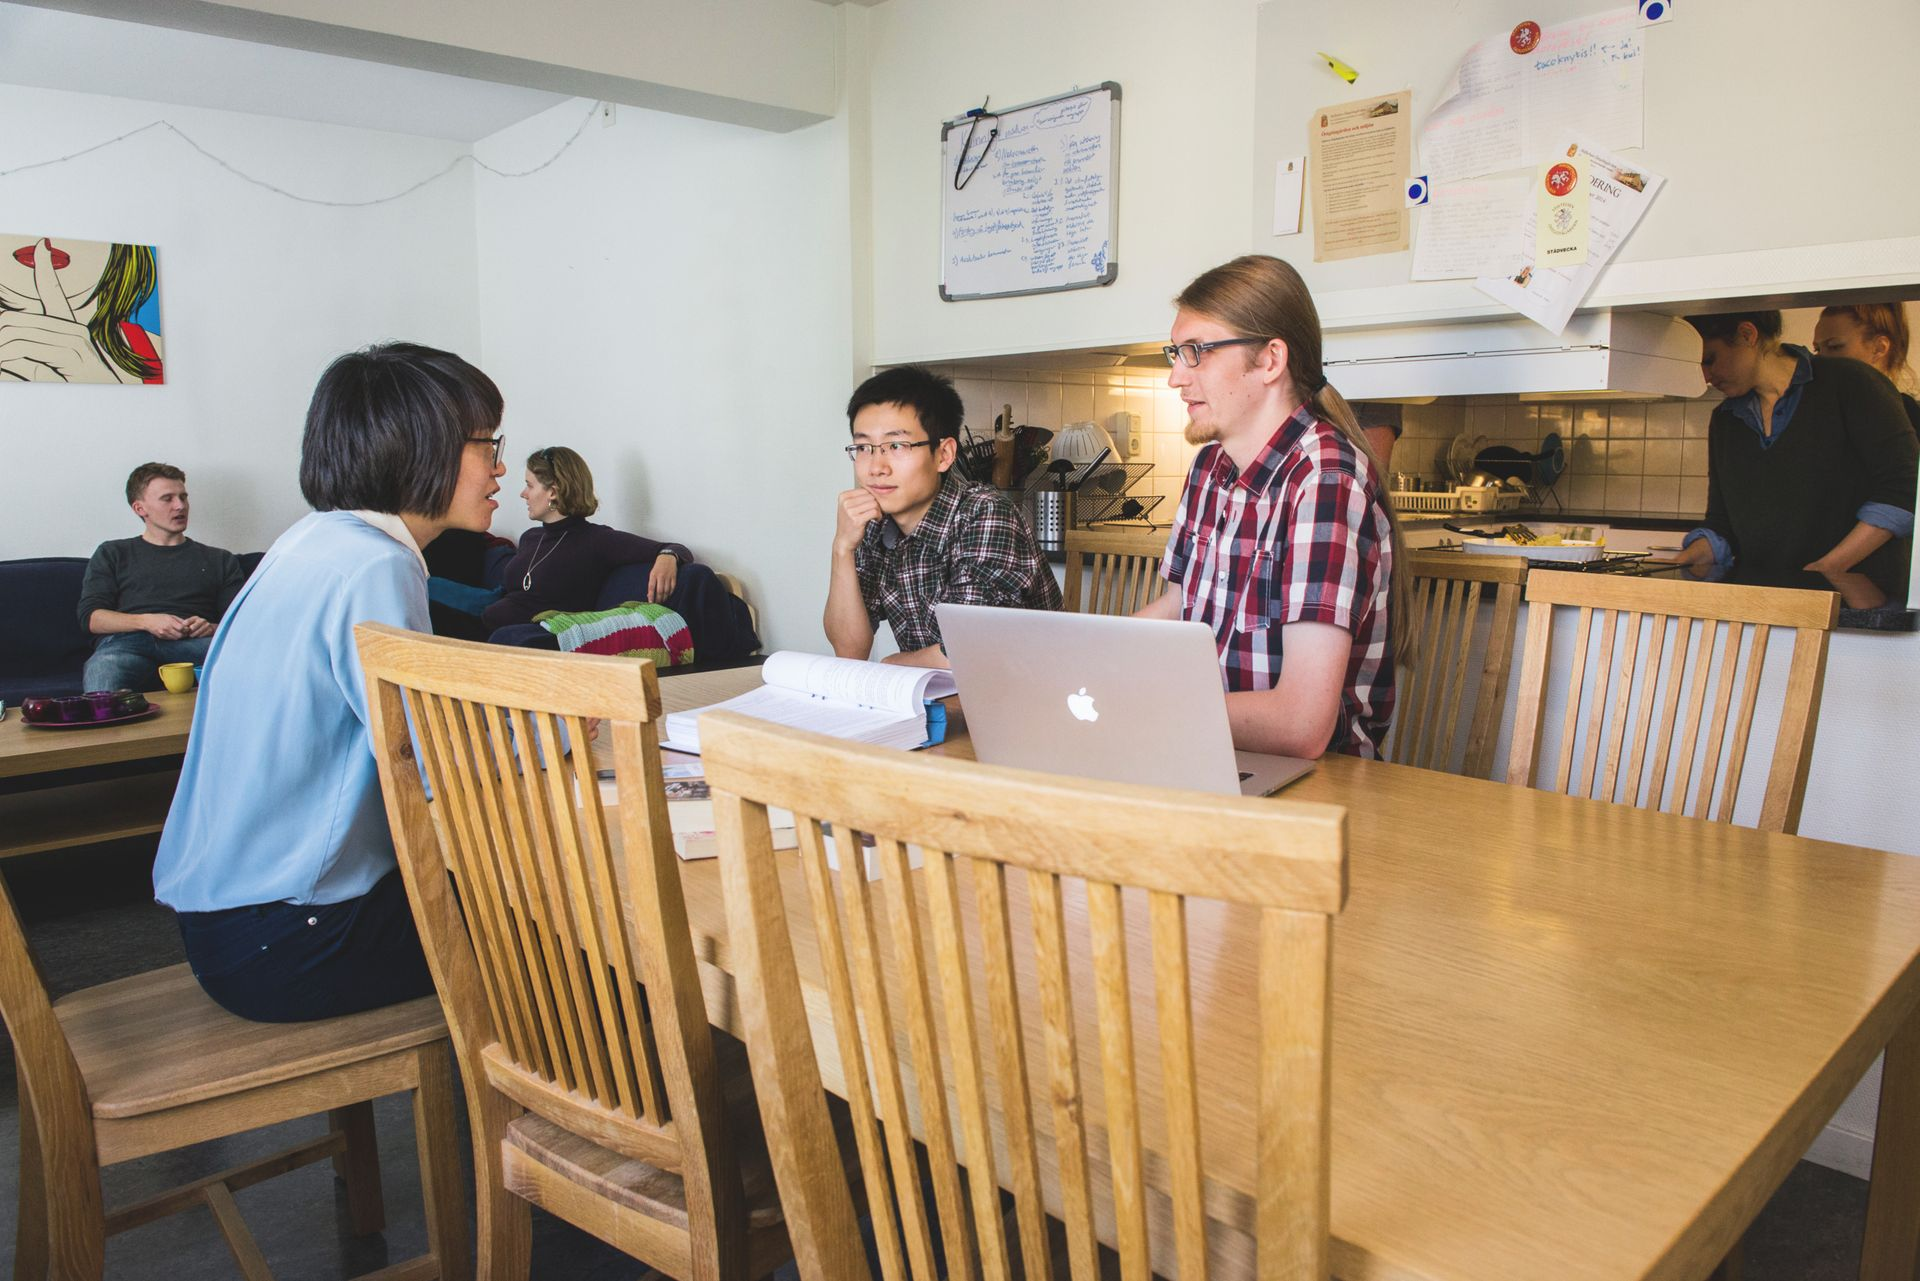 Students studying in a shared kitchen.